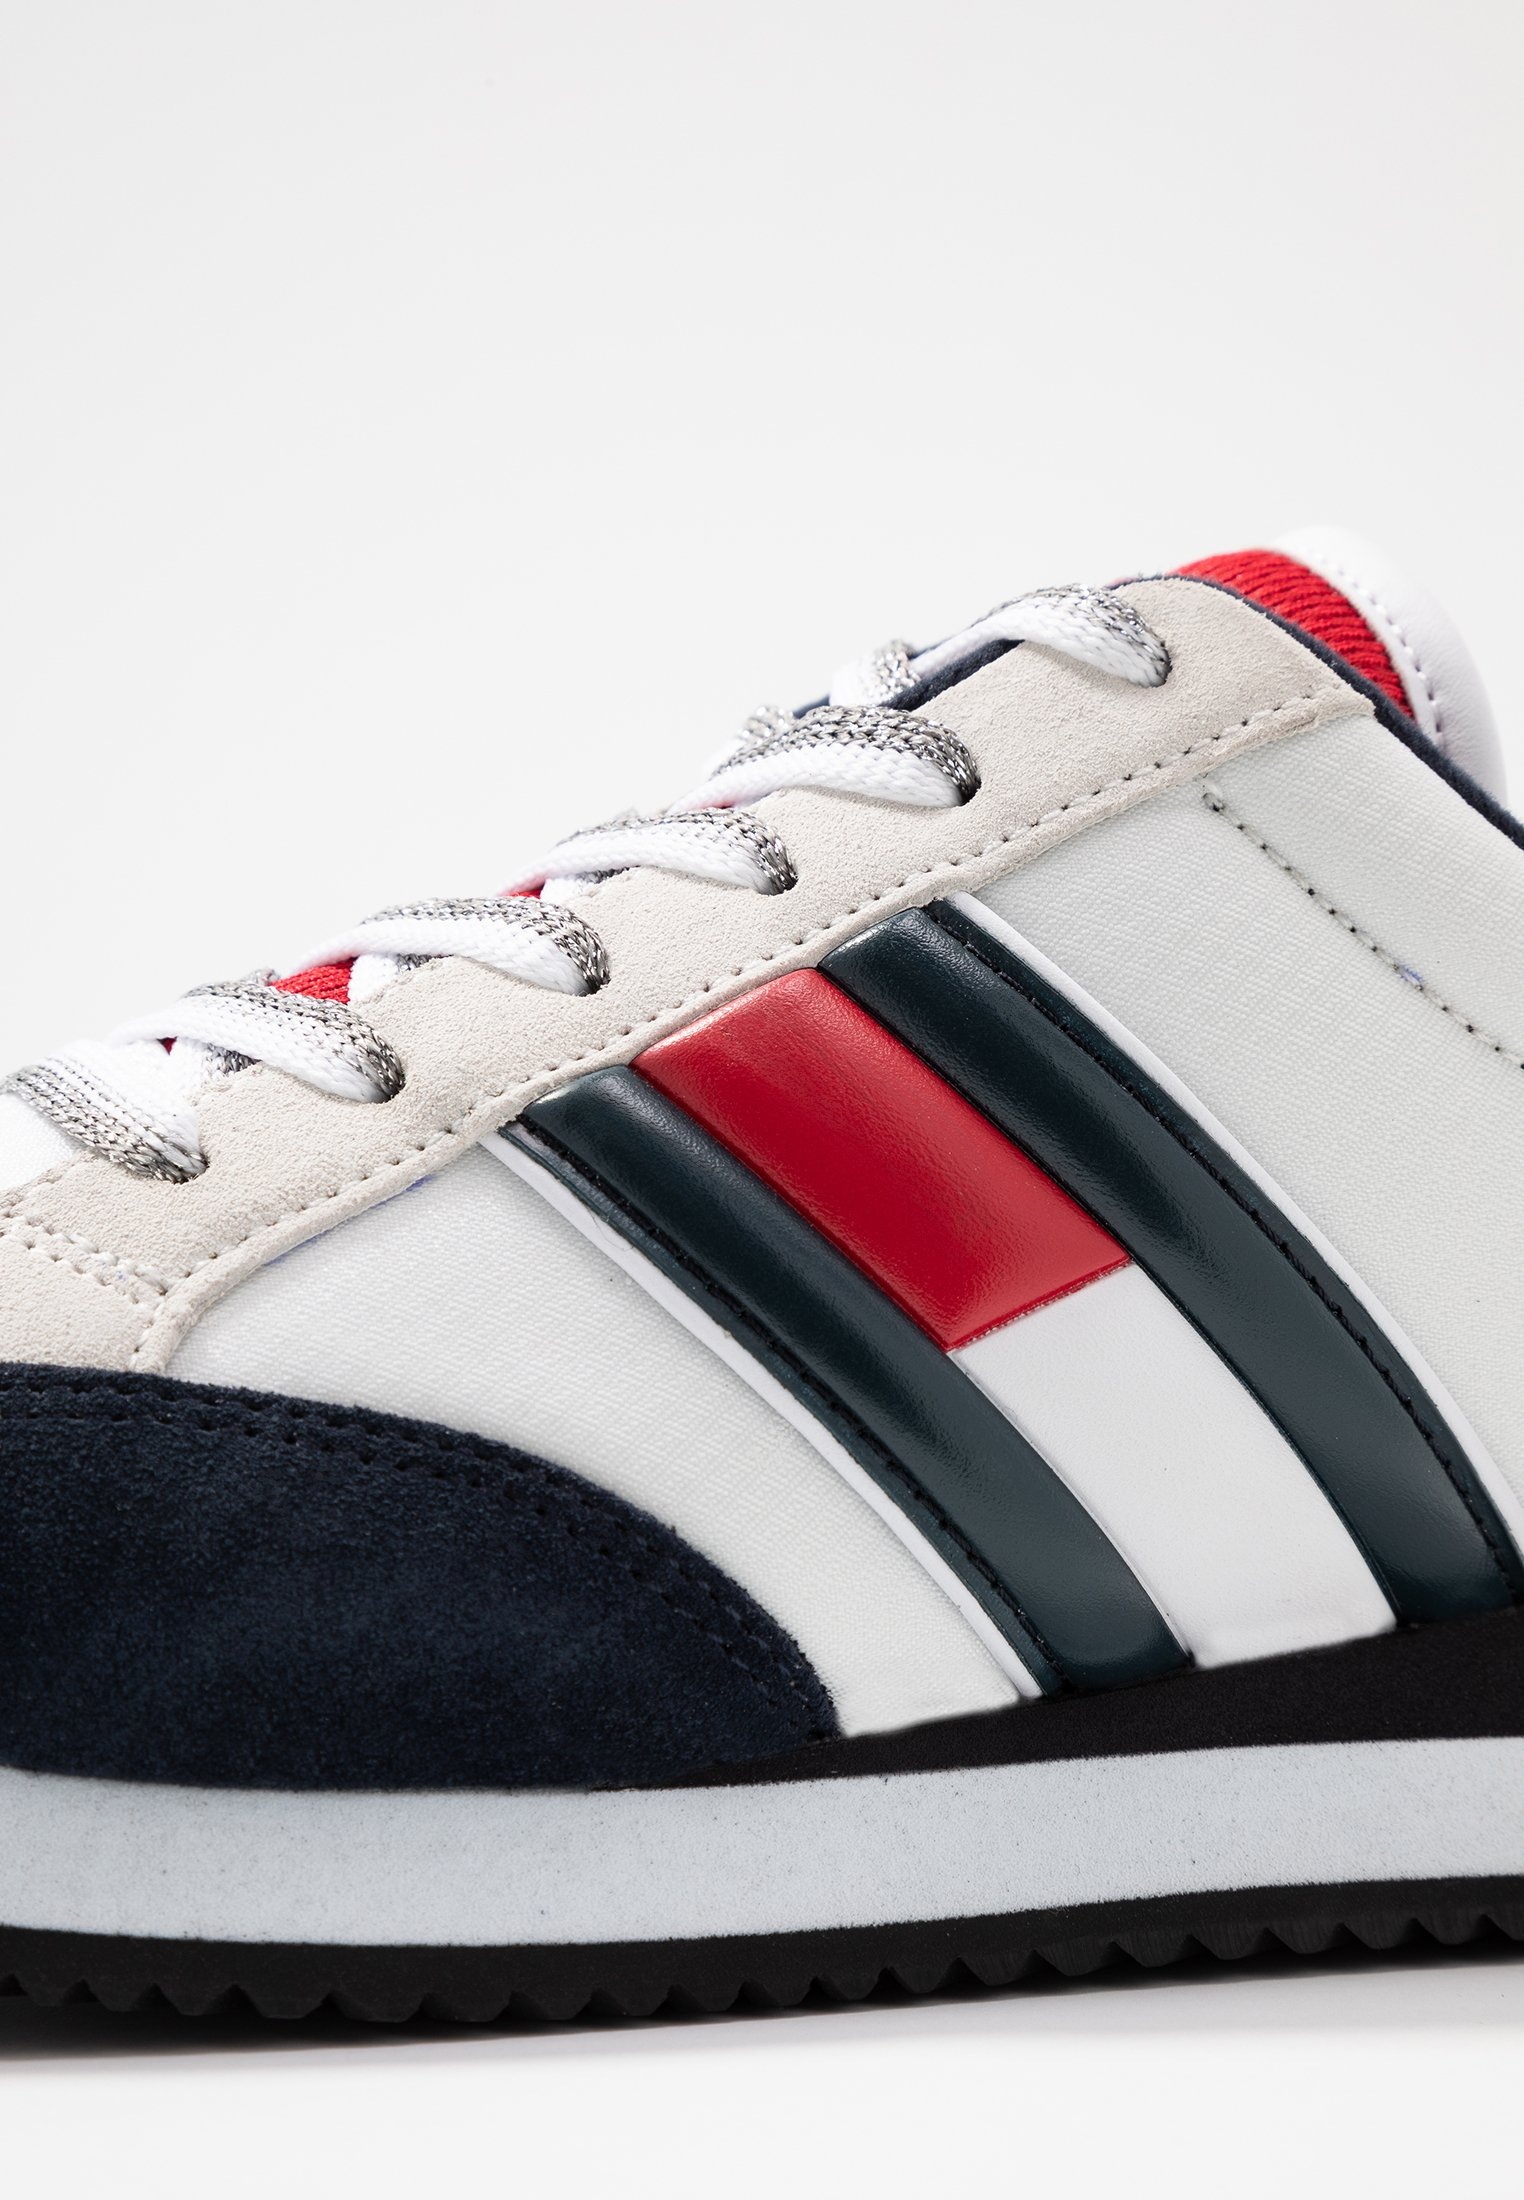 RetroBaskets Jeans Basses Red Casual Wmns Tommy zSLMGqUjVp